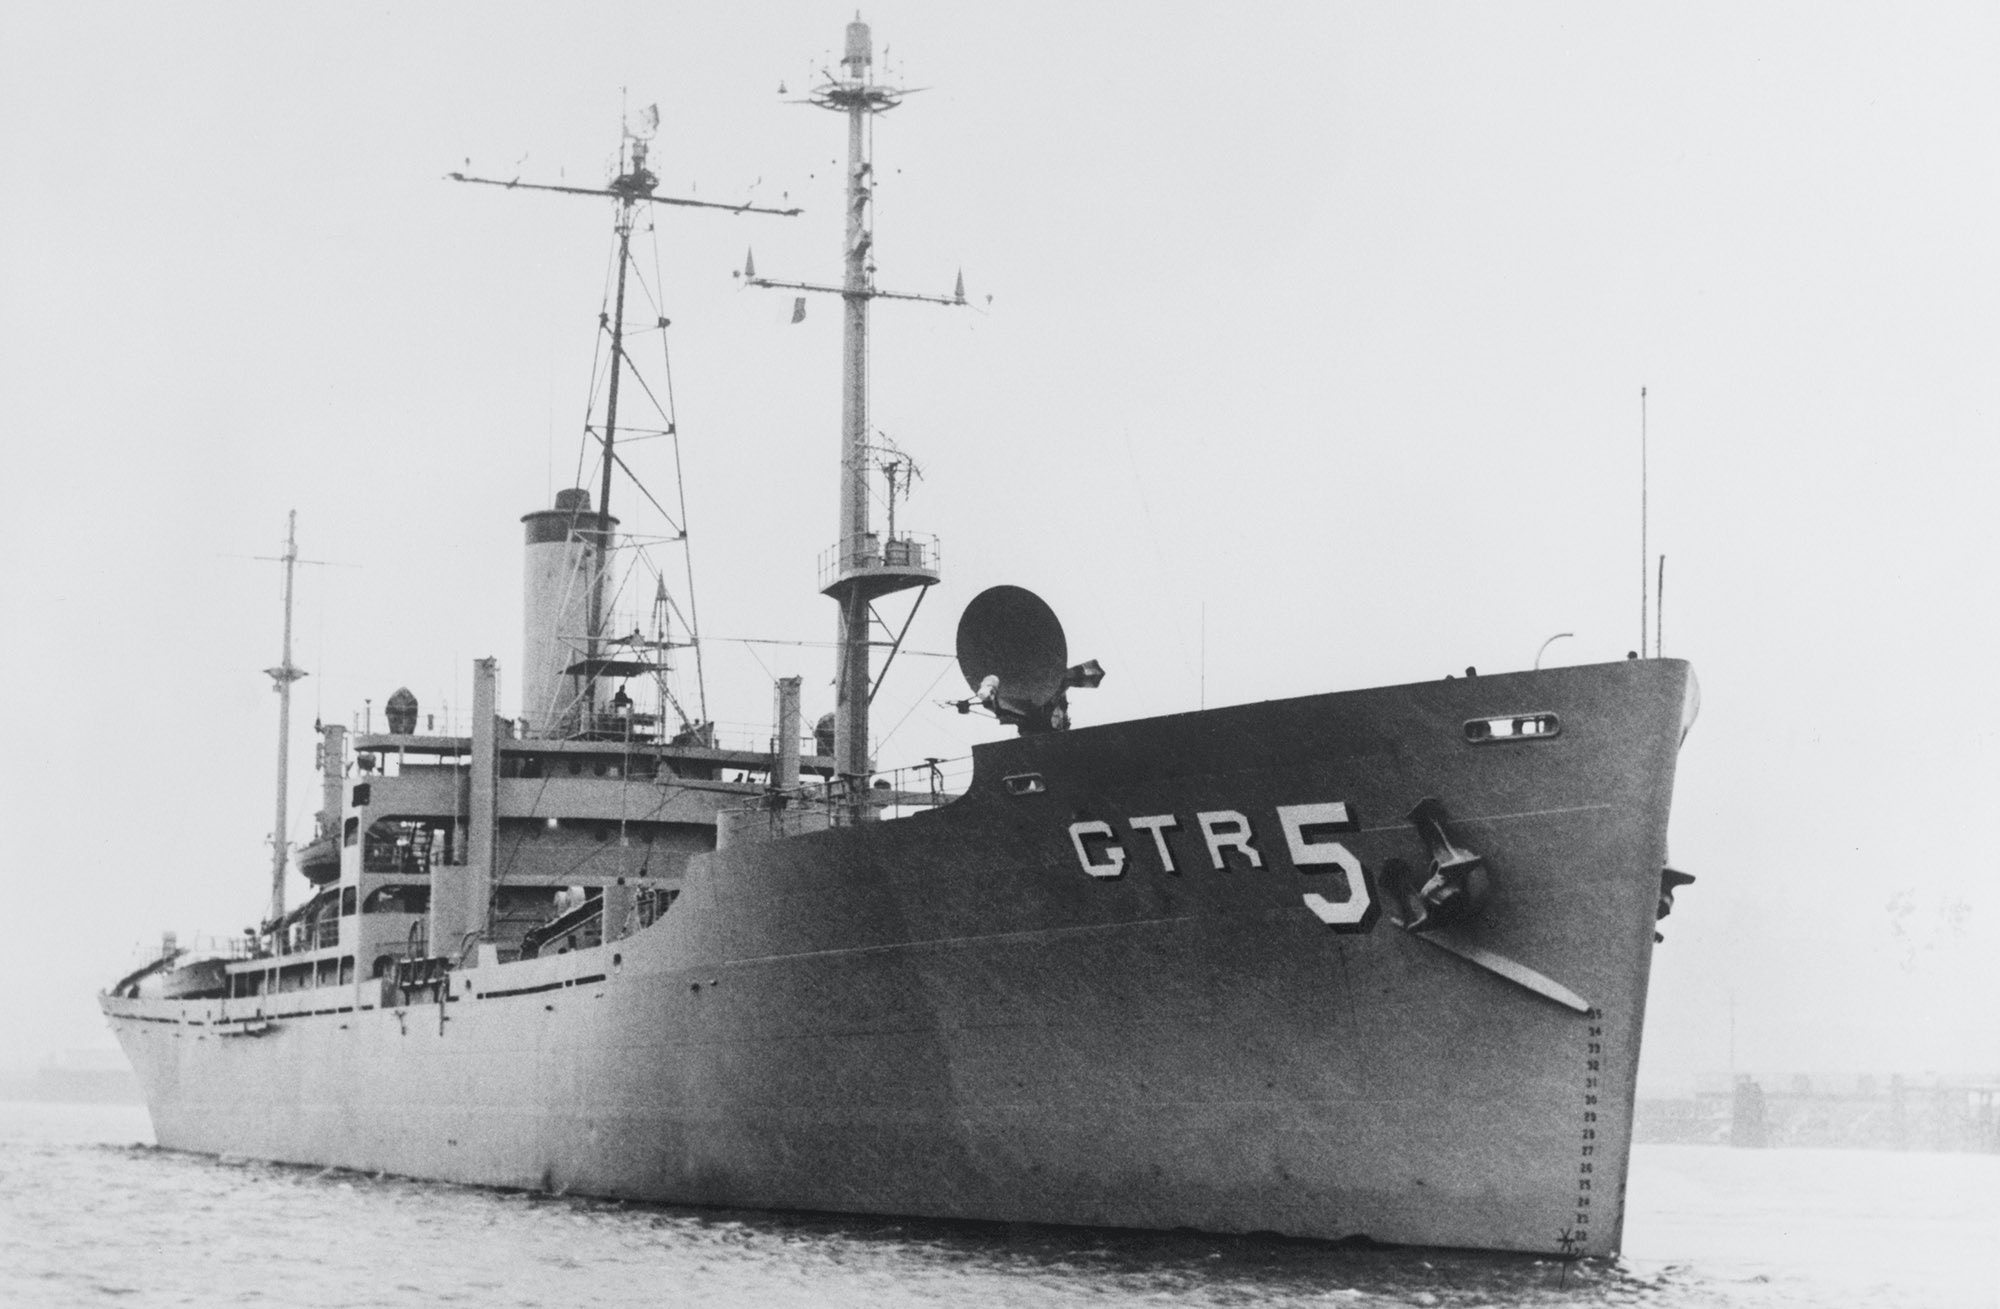 (Original Caption) Washington:Israeli planes and one or more torpedo boats mistakenly attacked this US Navy research ship, the USS Liberty (shown in file photo) in the Mediterranean Sea near the Sinai Peninsula 6/8. The Defense Department said four sailors were killed and 53 wounded. 6/8/197